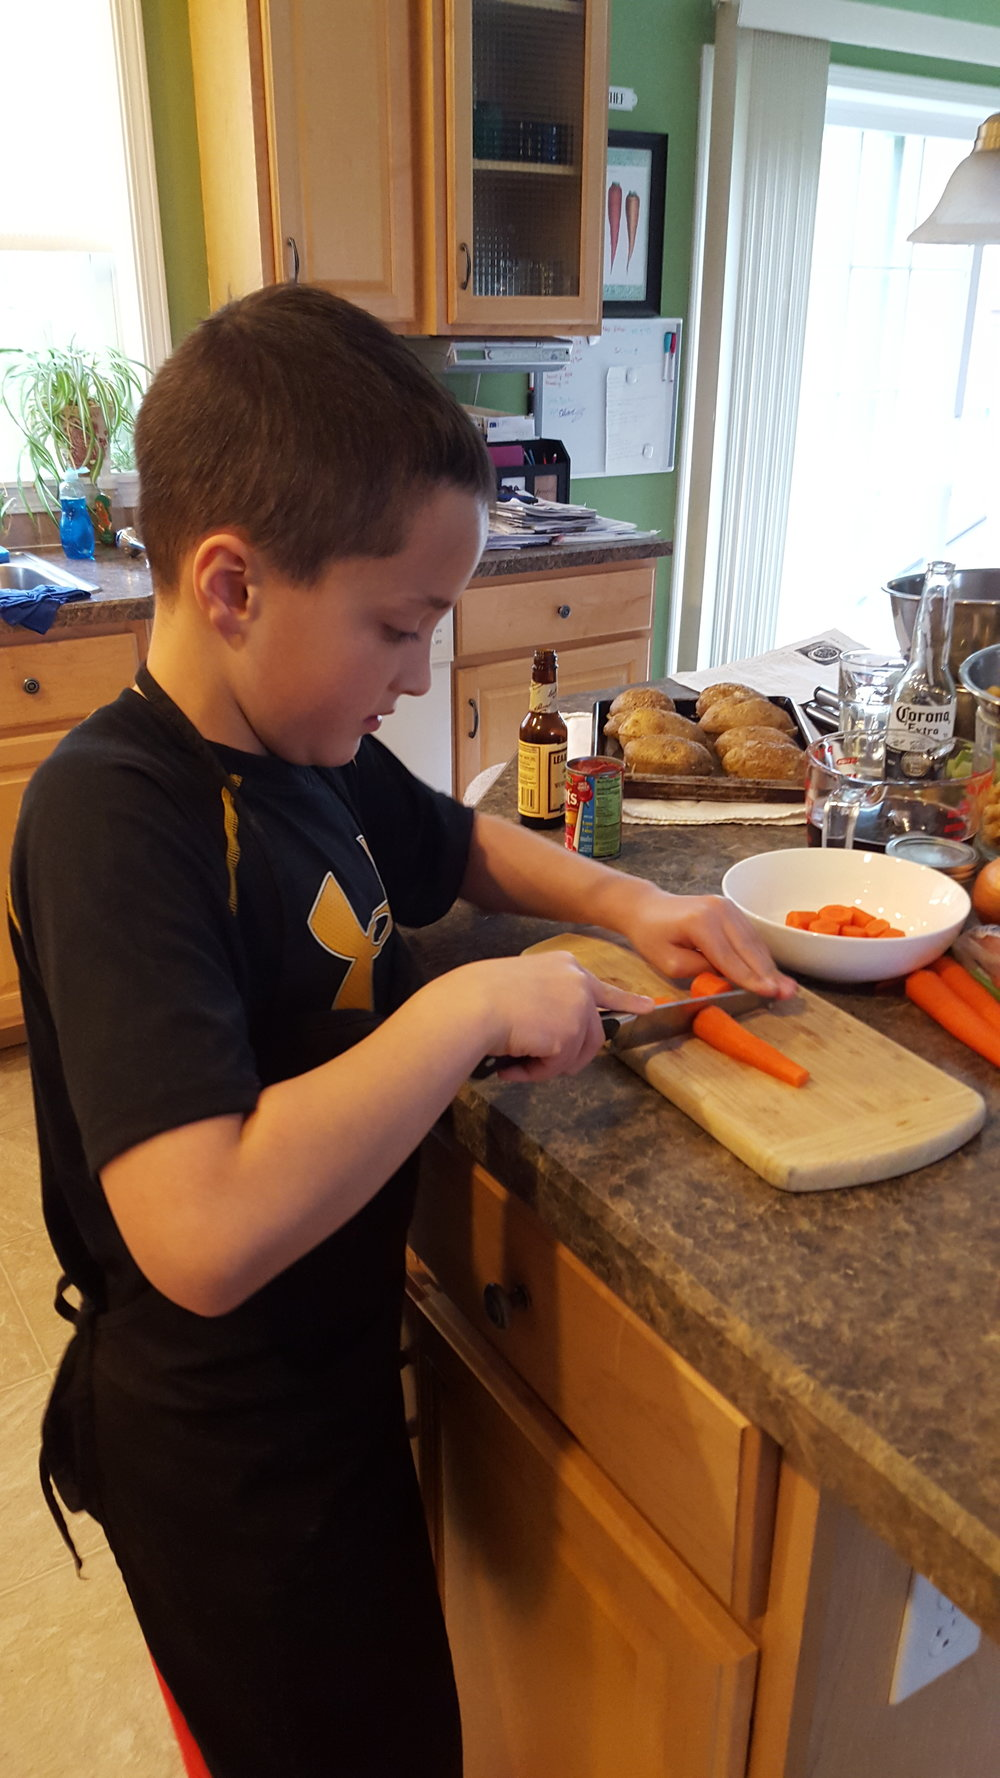 Cutting carrots Josh.jpg